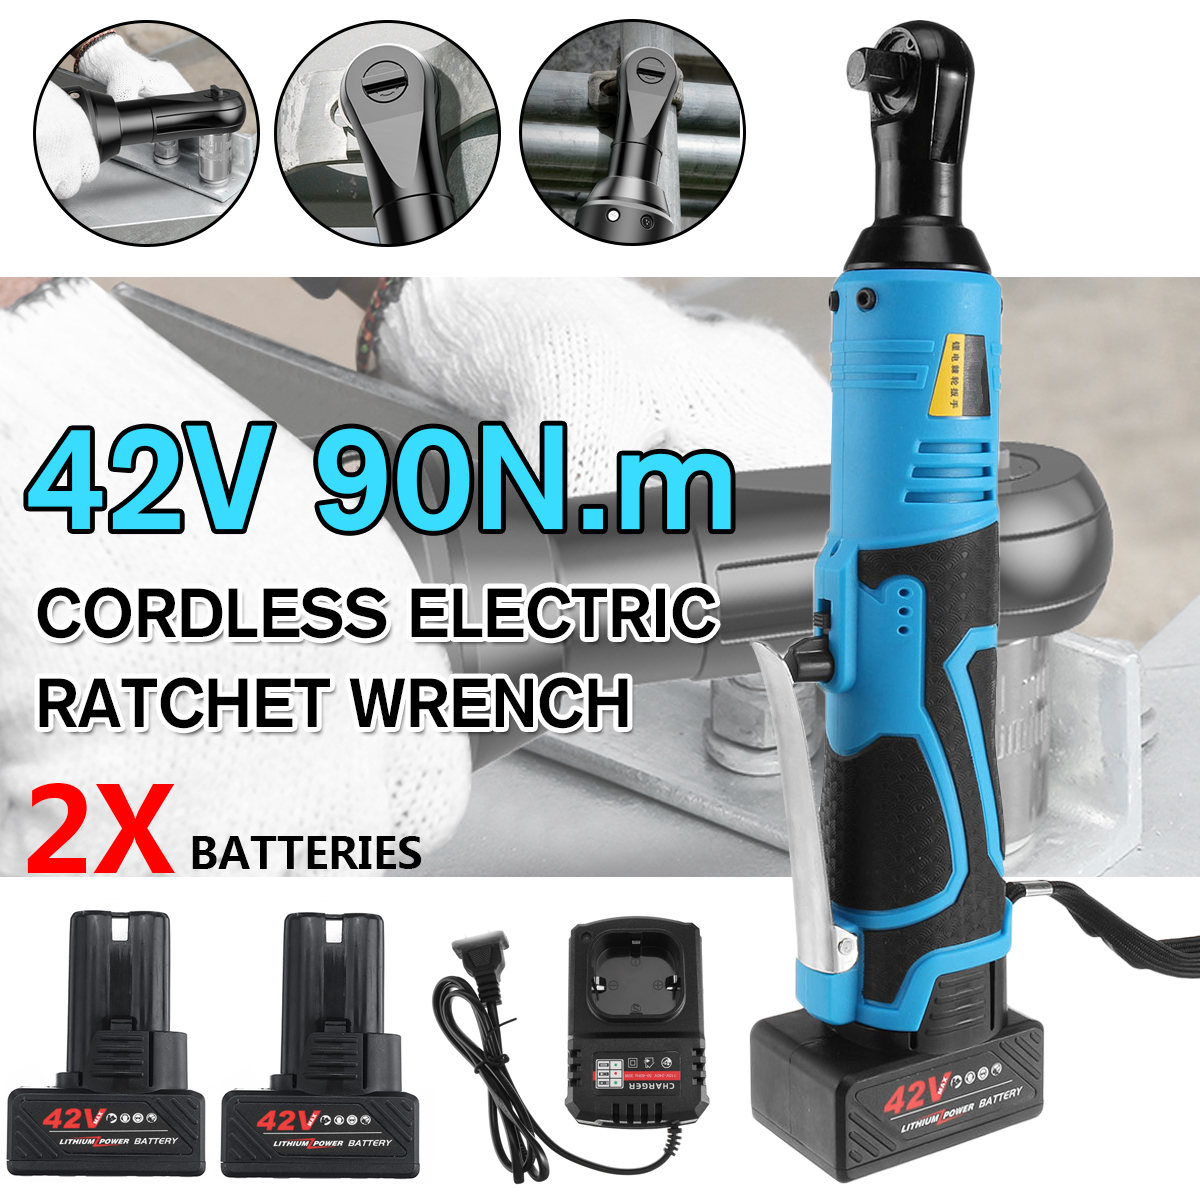 Electric Wrench 3/8